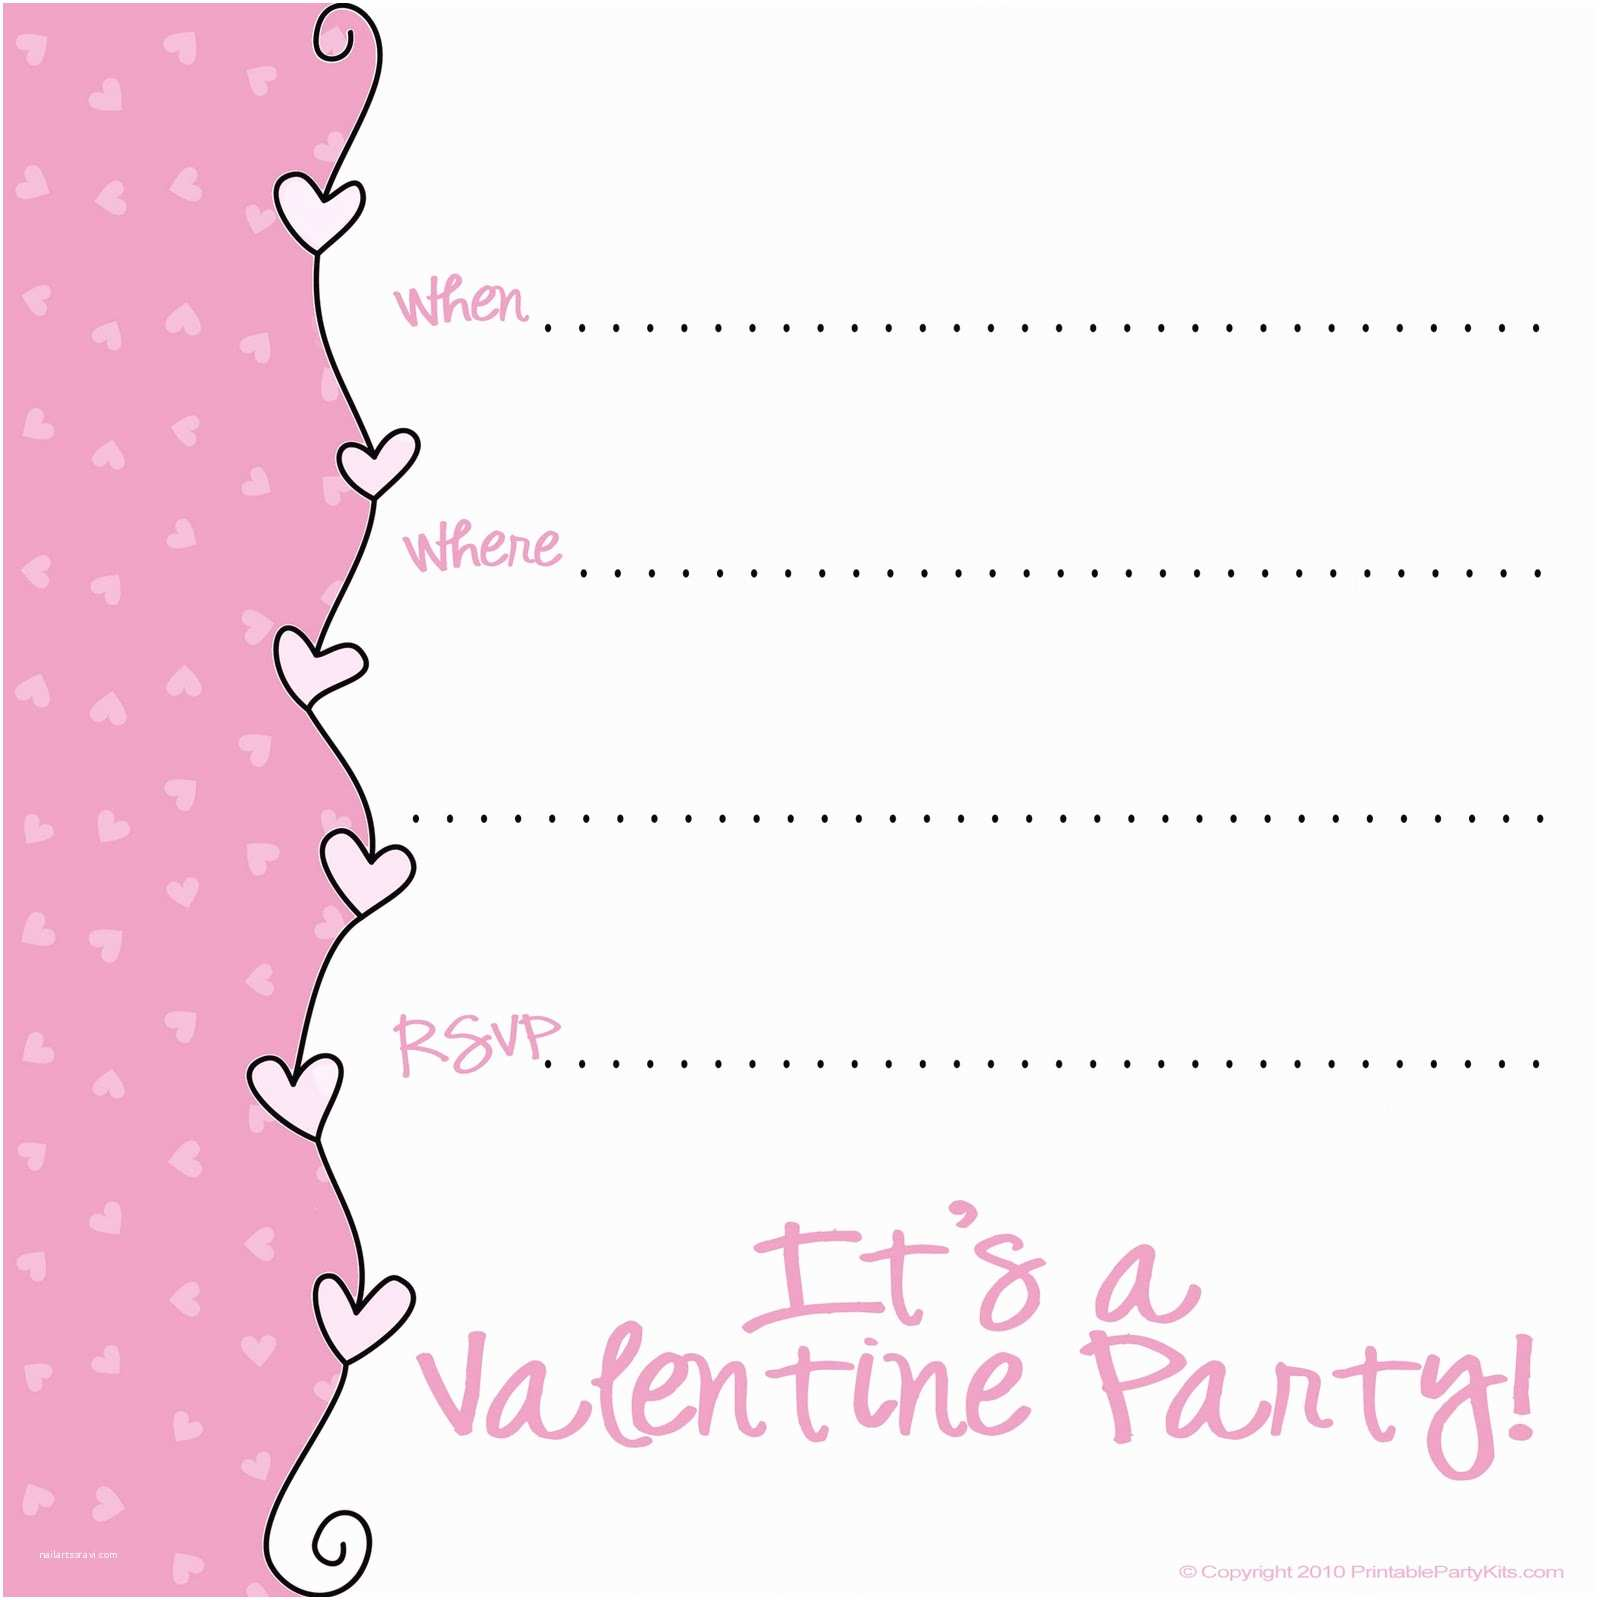 Valentines Day Party Invitations Free Printable Party Invitations Invitation Design for A